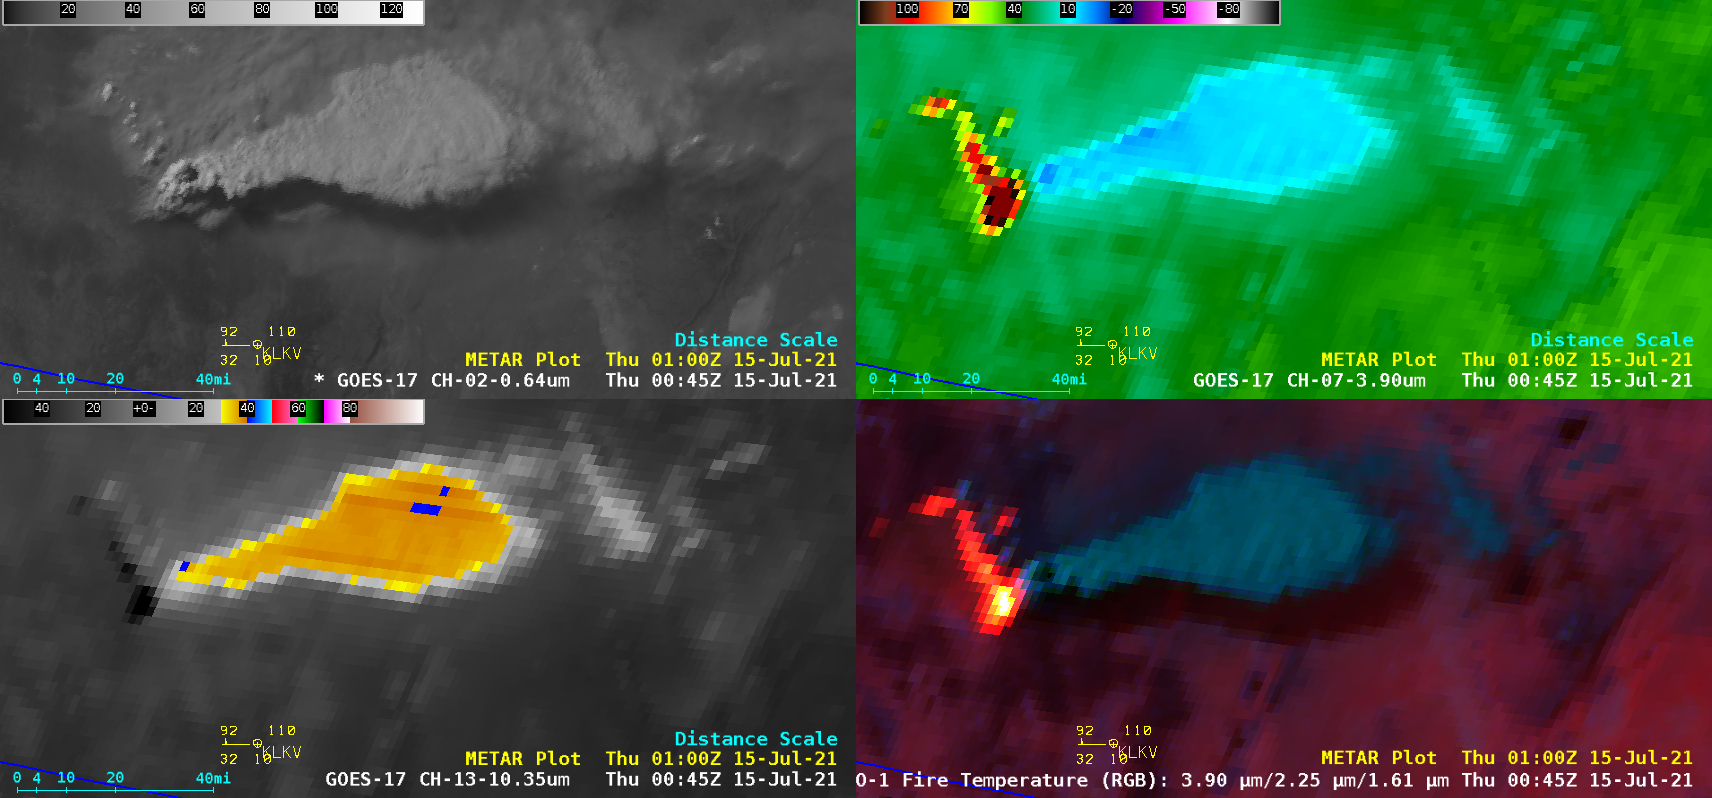 """GOES-17 """"Red"""" Visible (0.64 µm, top left), Shortwave Infrared (3.9 µm, top right), """"Clean"""" Infrared Window (10.35 µm, bottom left) and Fire Temperature RGB (bottom right) [click to play animation 